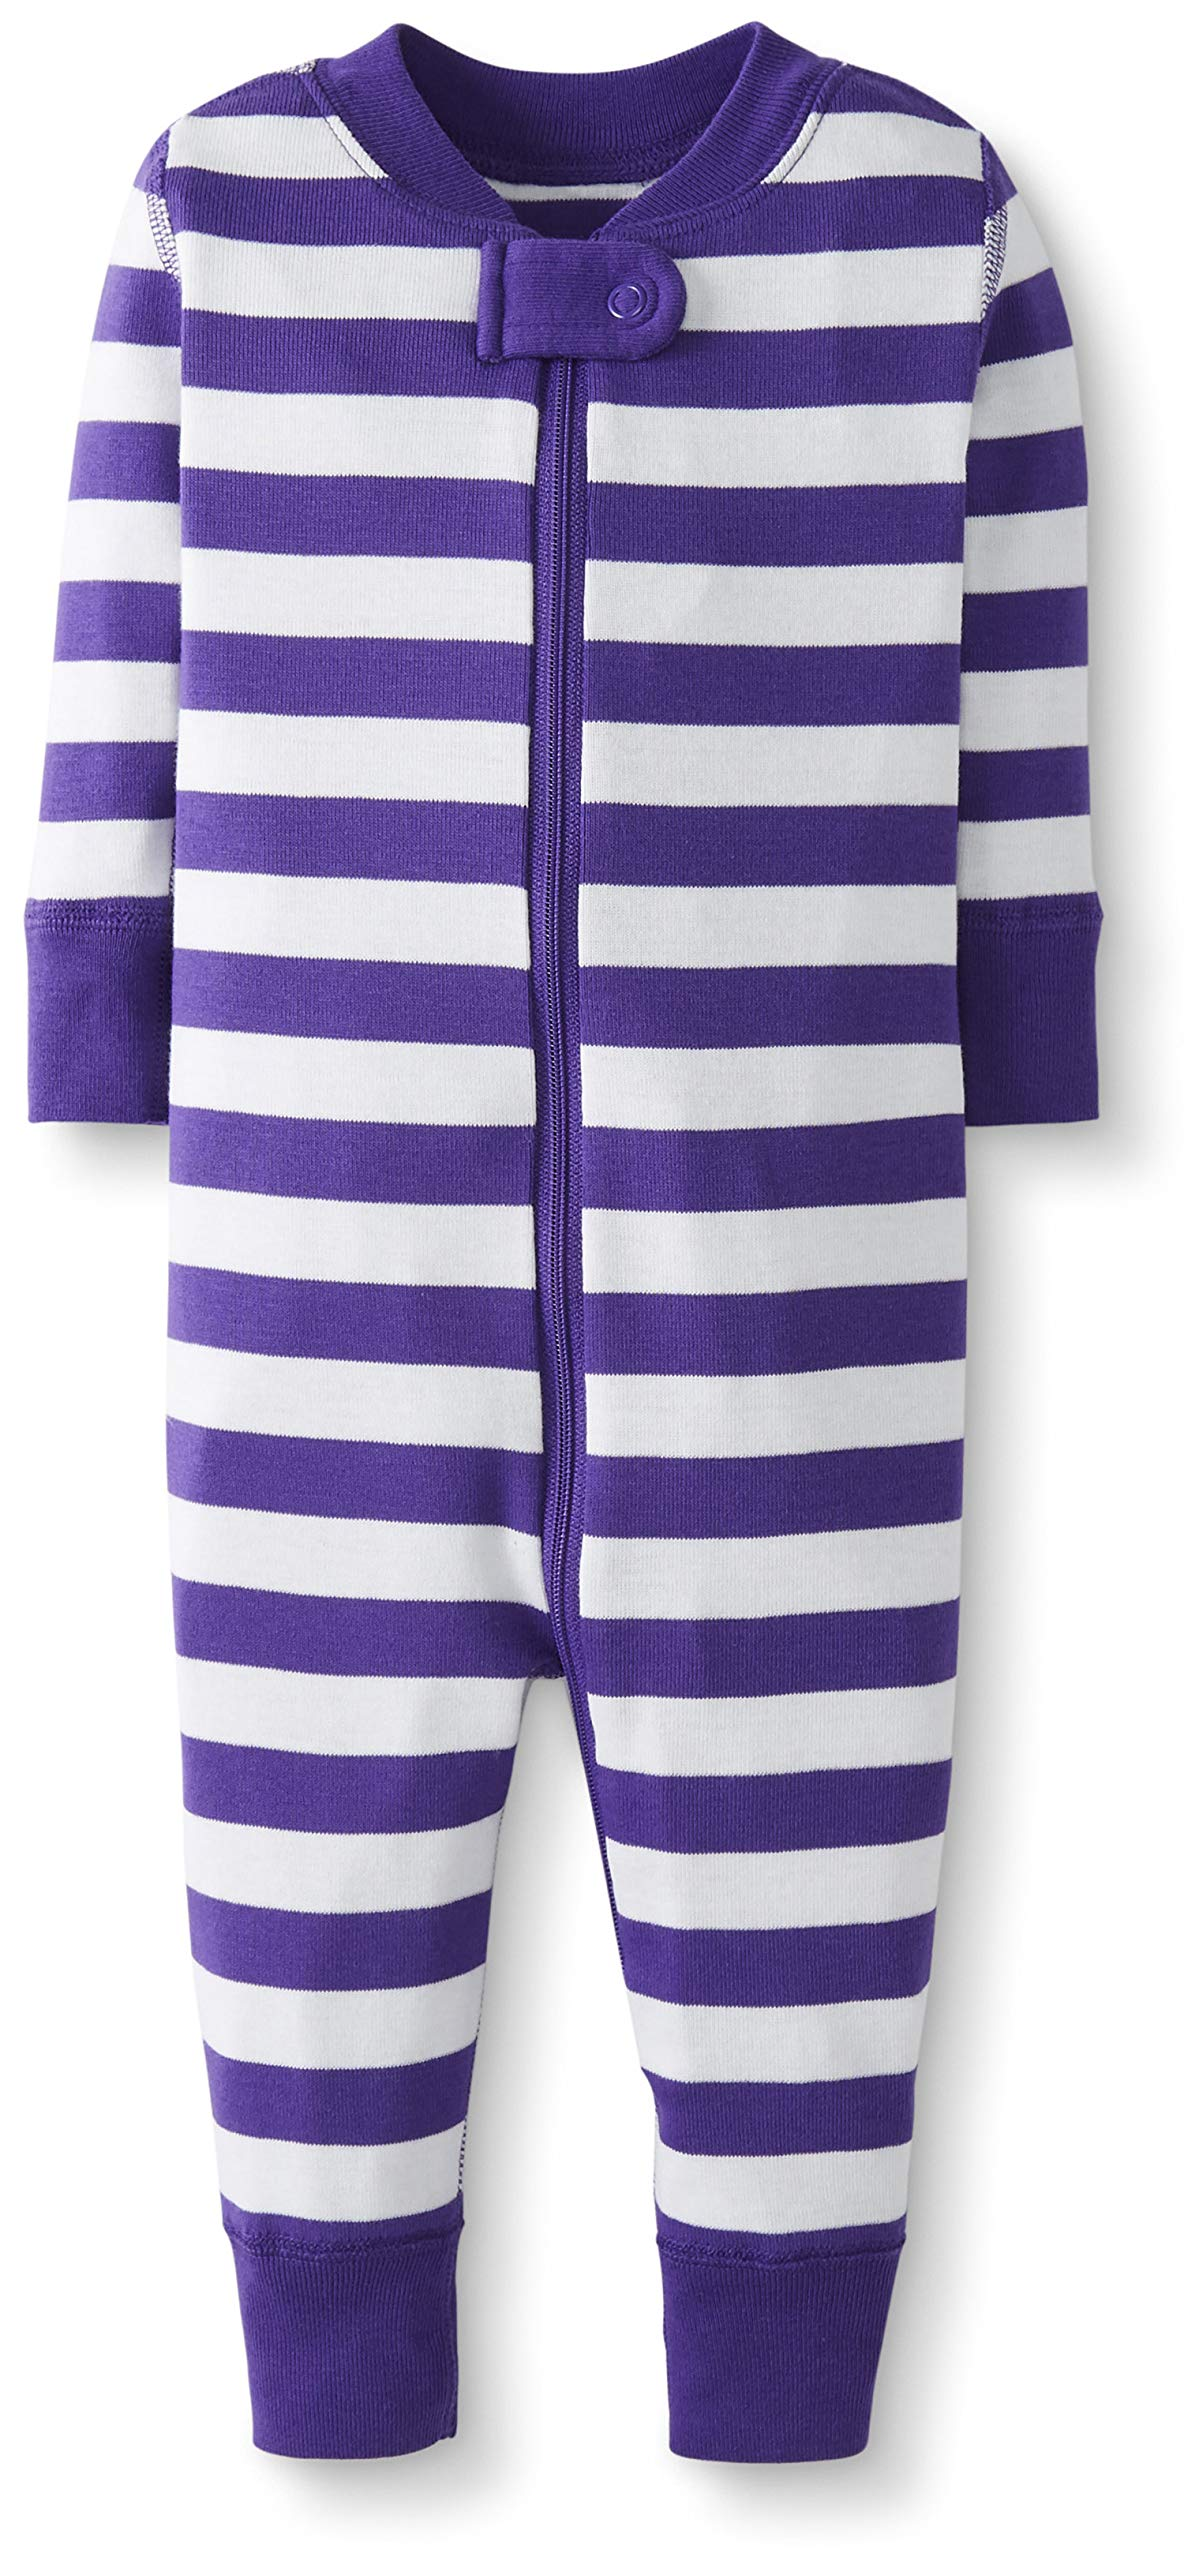 Hanna Andersson Baby/Toddler One-Piece Organic Cotton Footless Pajama Purple Hills/Hanna White-75 by Hanna Andersson